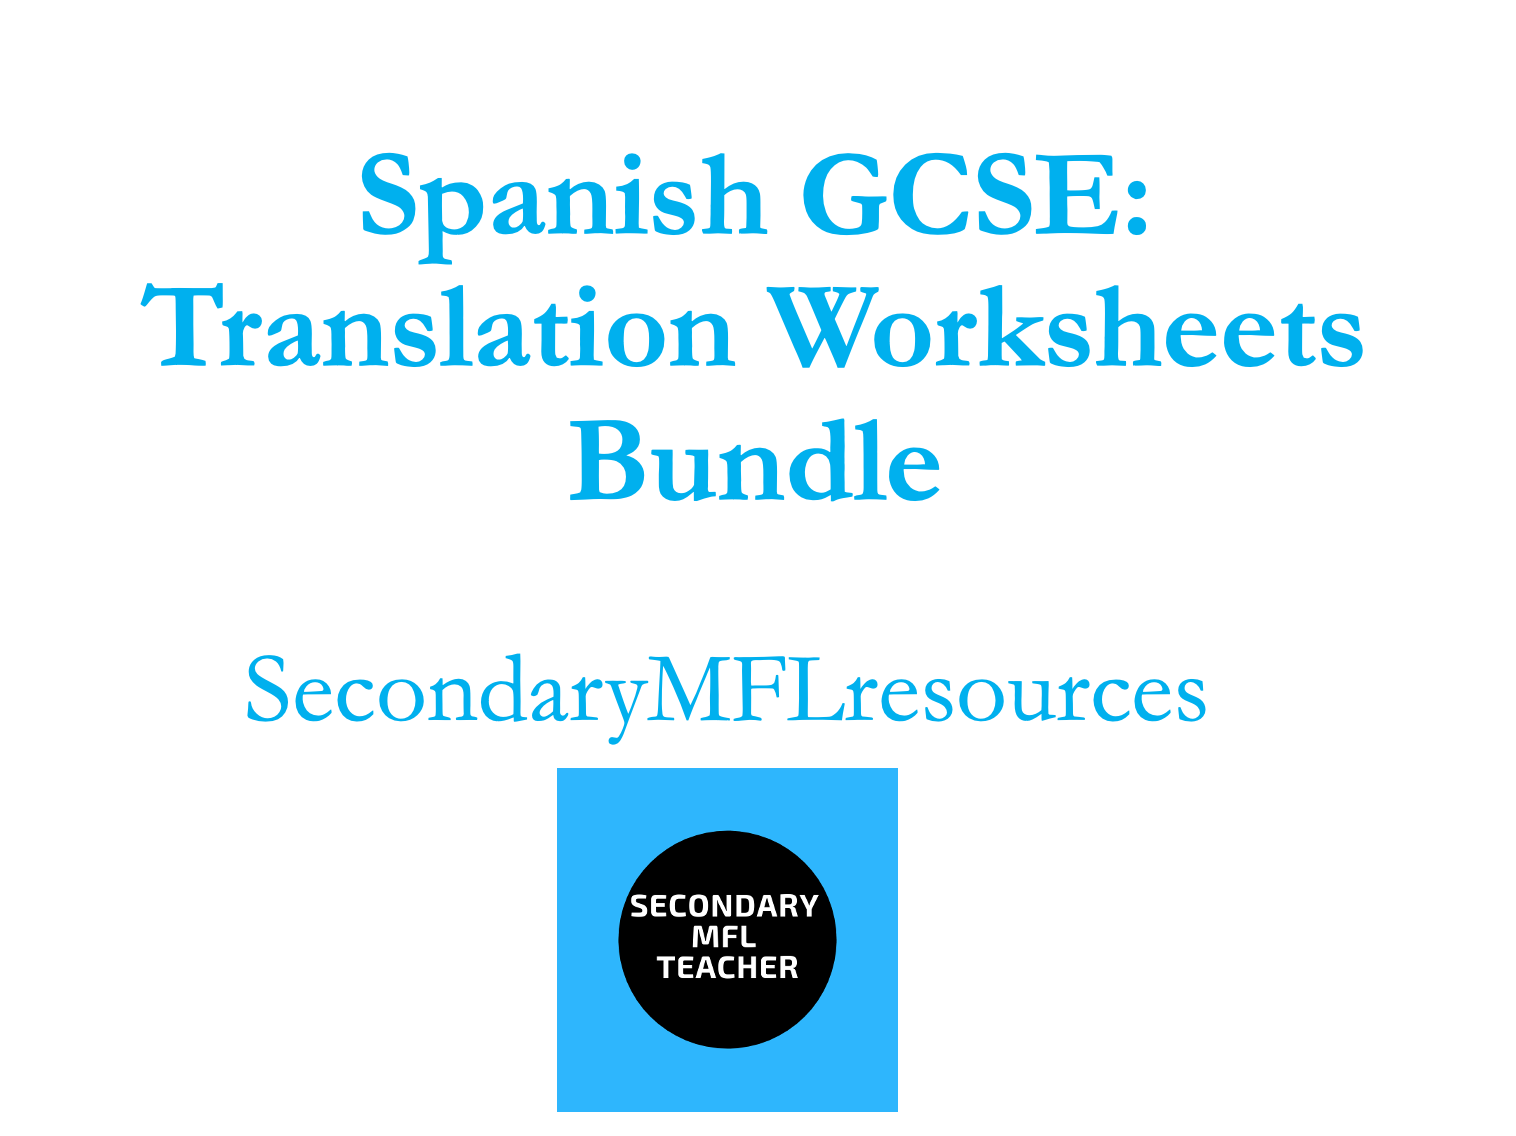 Spanish GCSE Translation Worksheets (12 Worksheets on various topics)